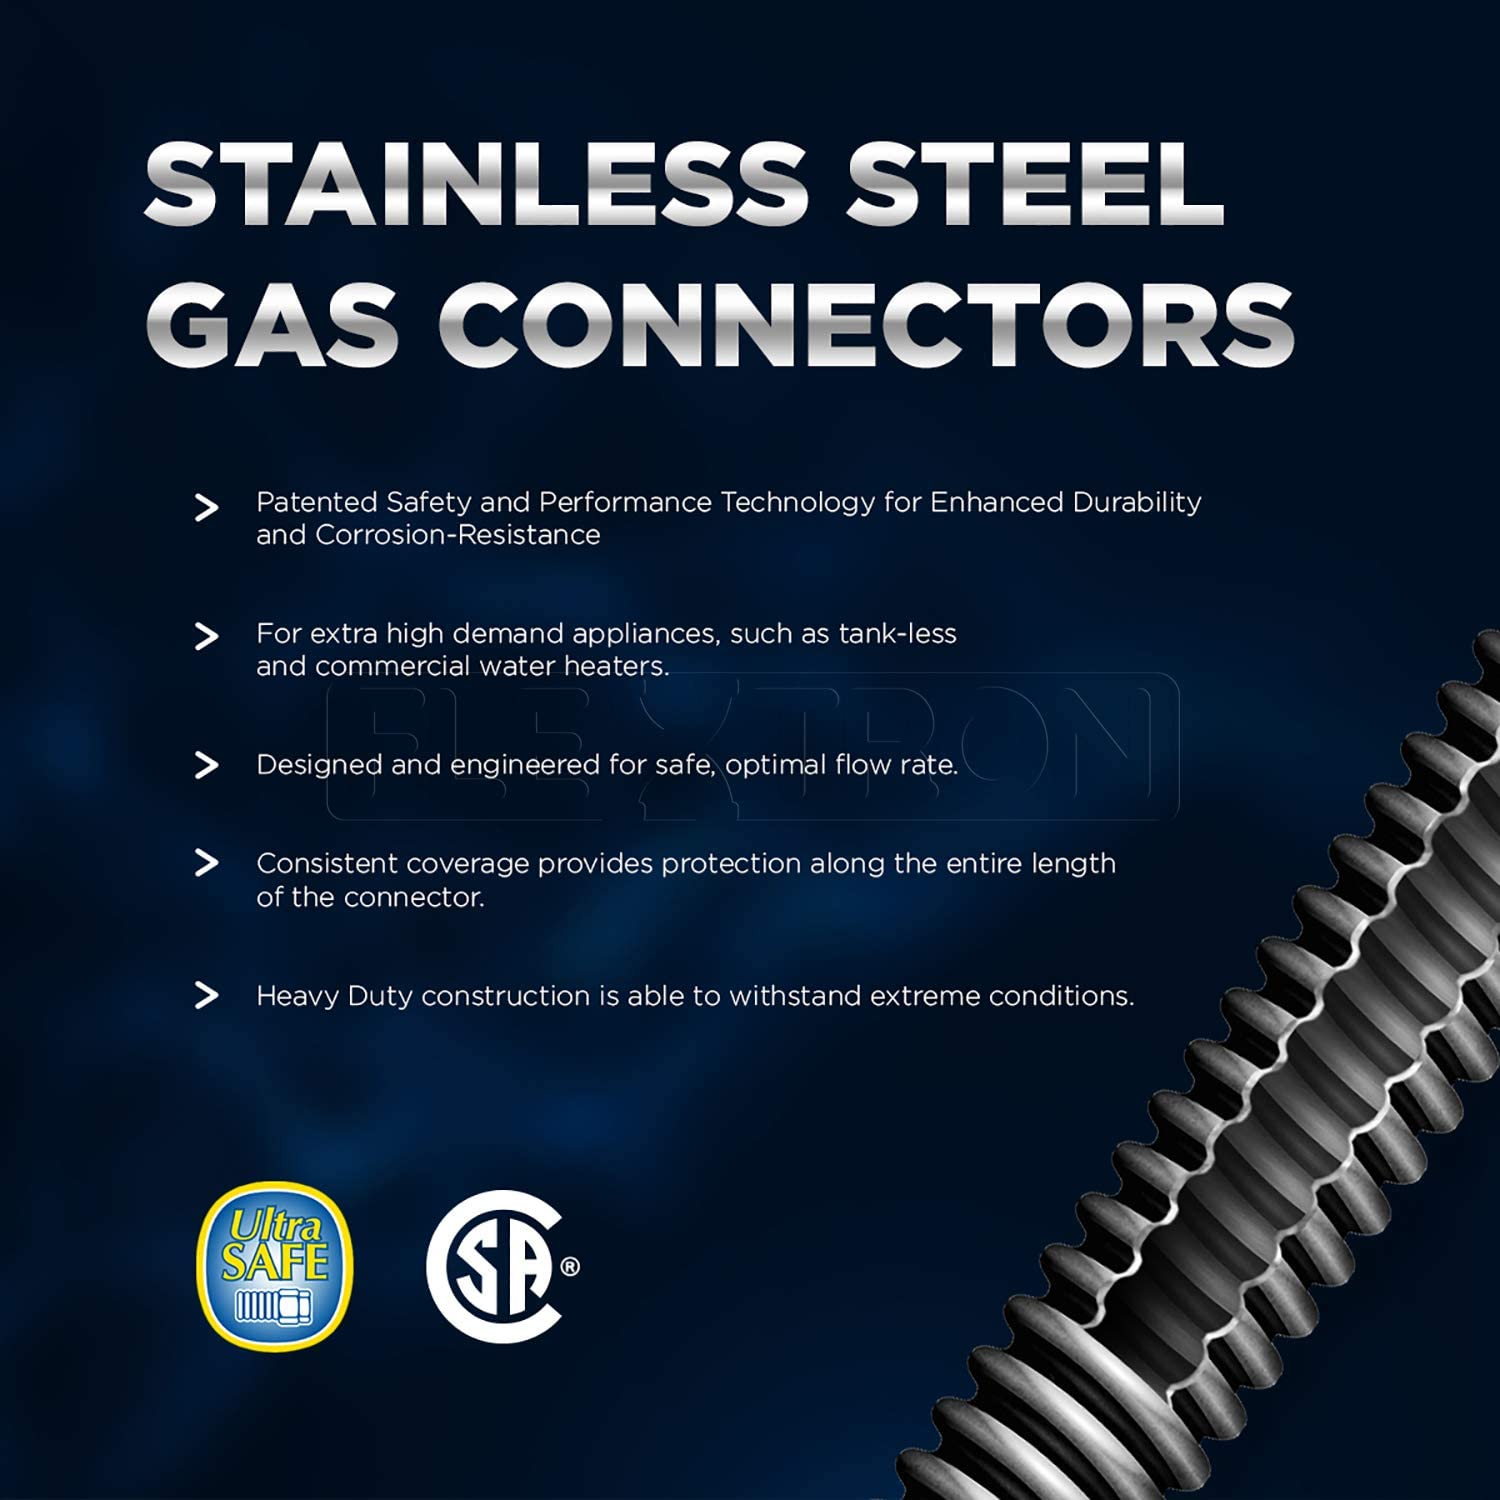 x 30 Length with 3//8 in MIP Fitting 30 Inch Uncoated Stainless Steel Flexible Connector Highcraft GUHD-TT38-30H Gas Line Hose 1//2 O.D